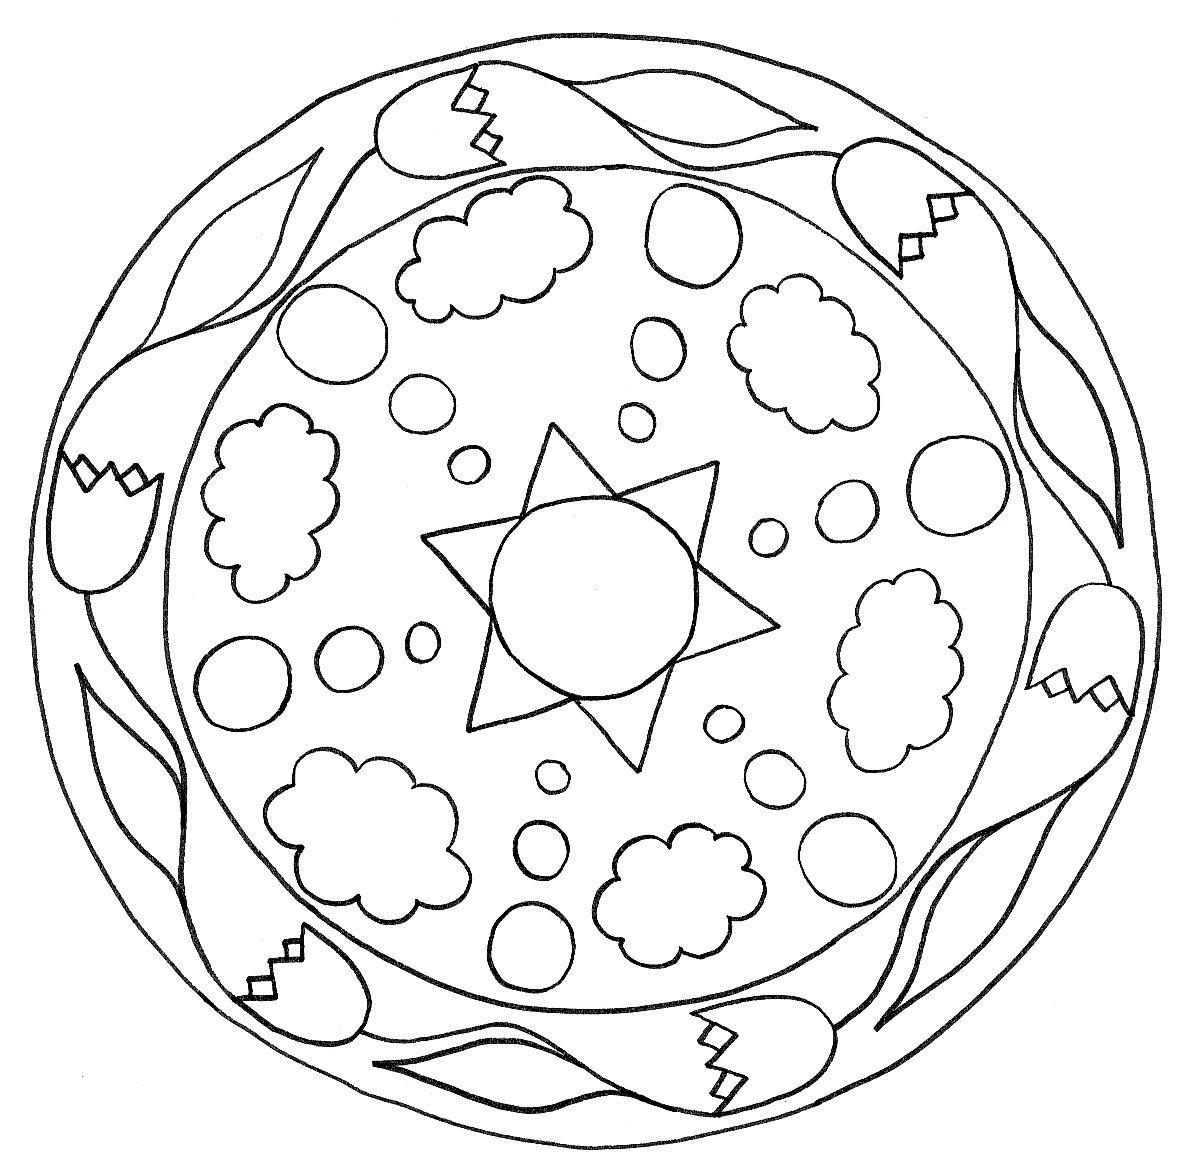 photo relating to Free Printable Mandalas for Beginners identify Cost-free Printable Mandalas for Young children - Most straightforward Coloring Webpages For Little ones